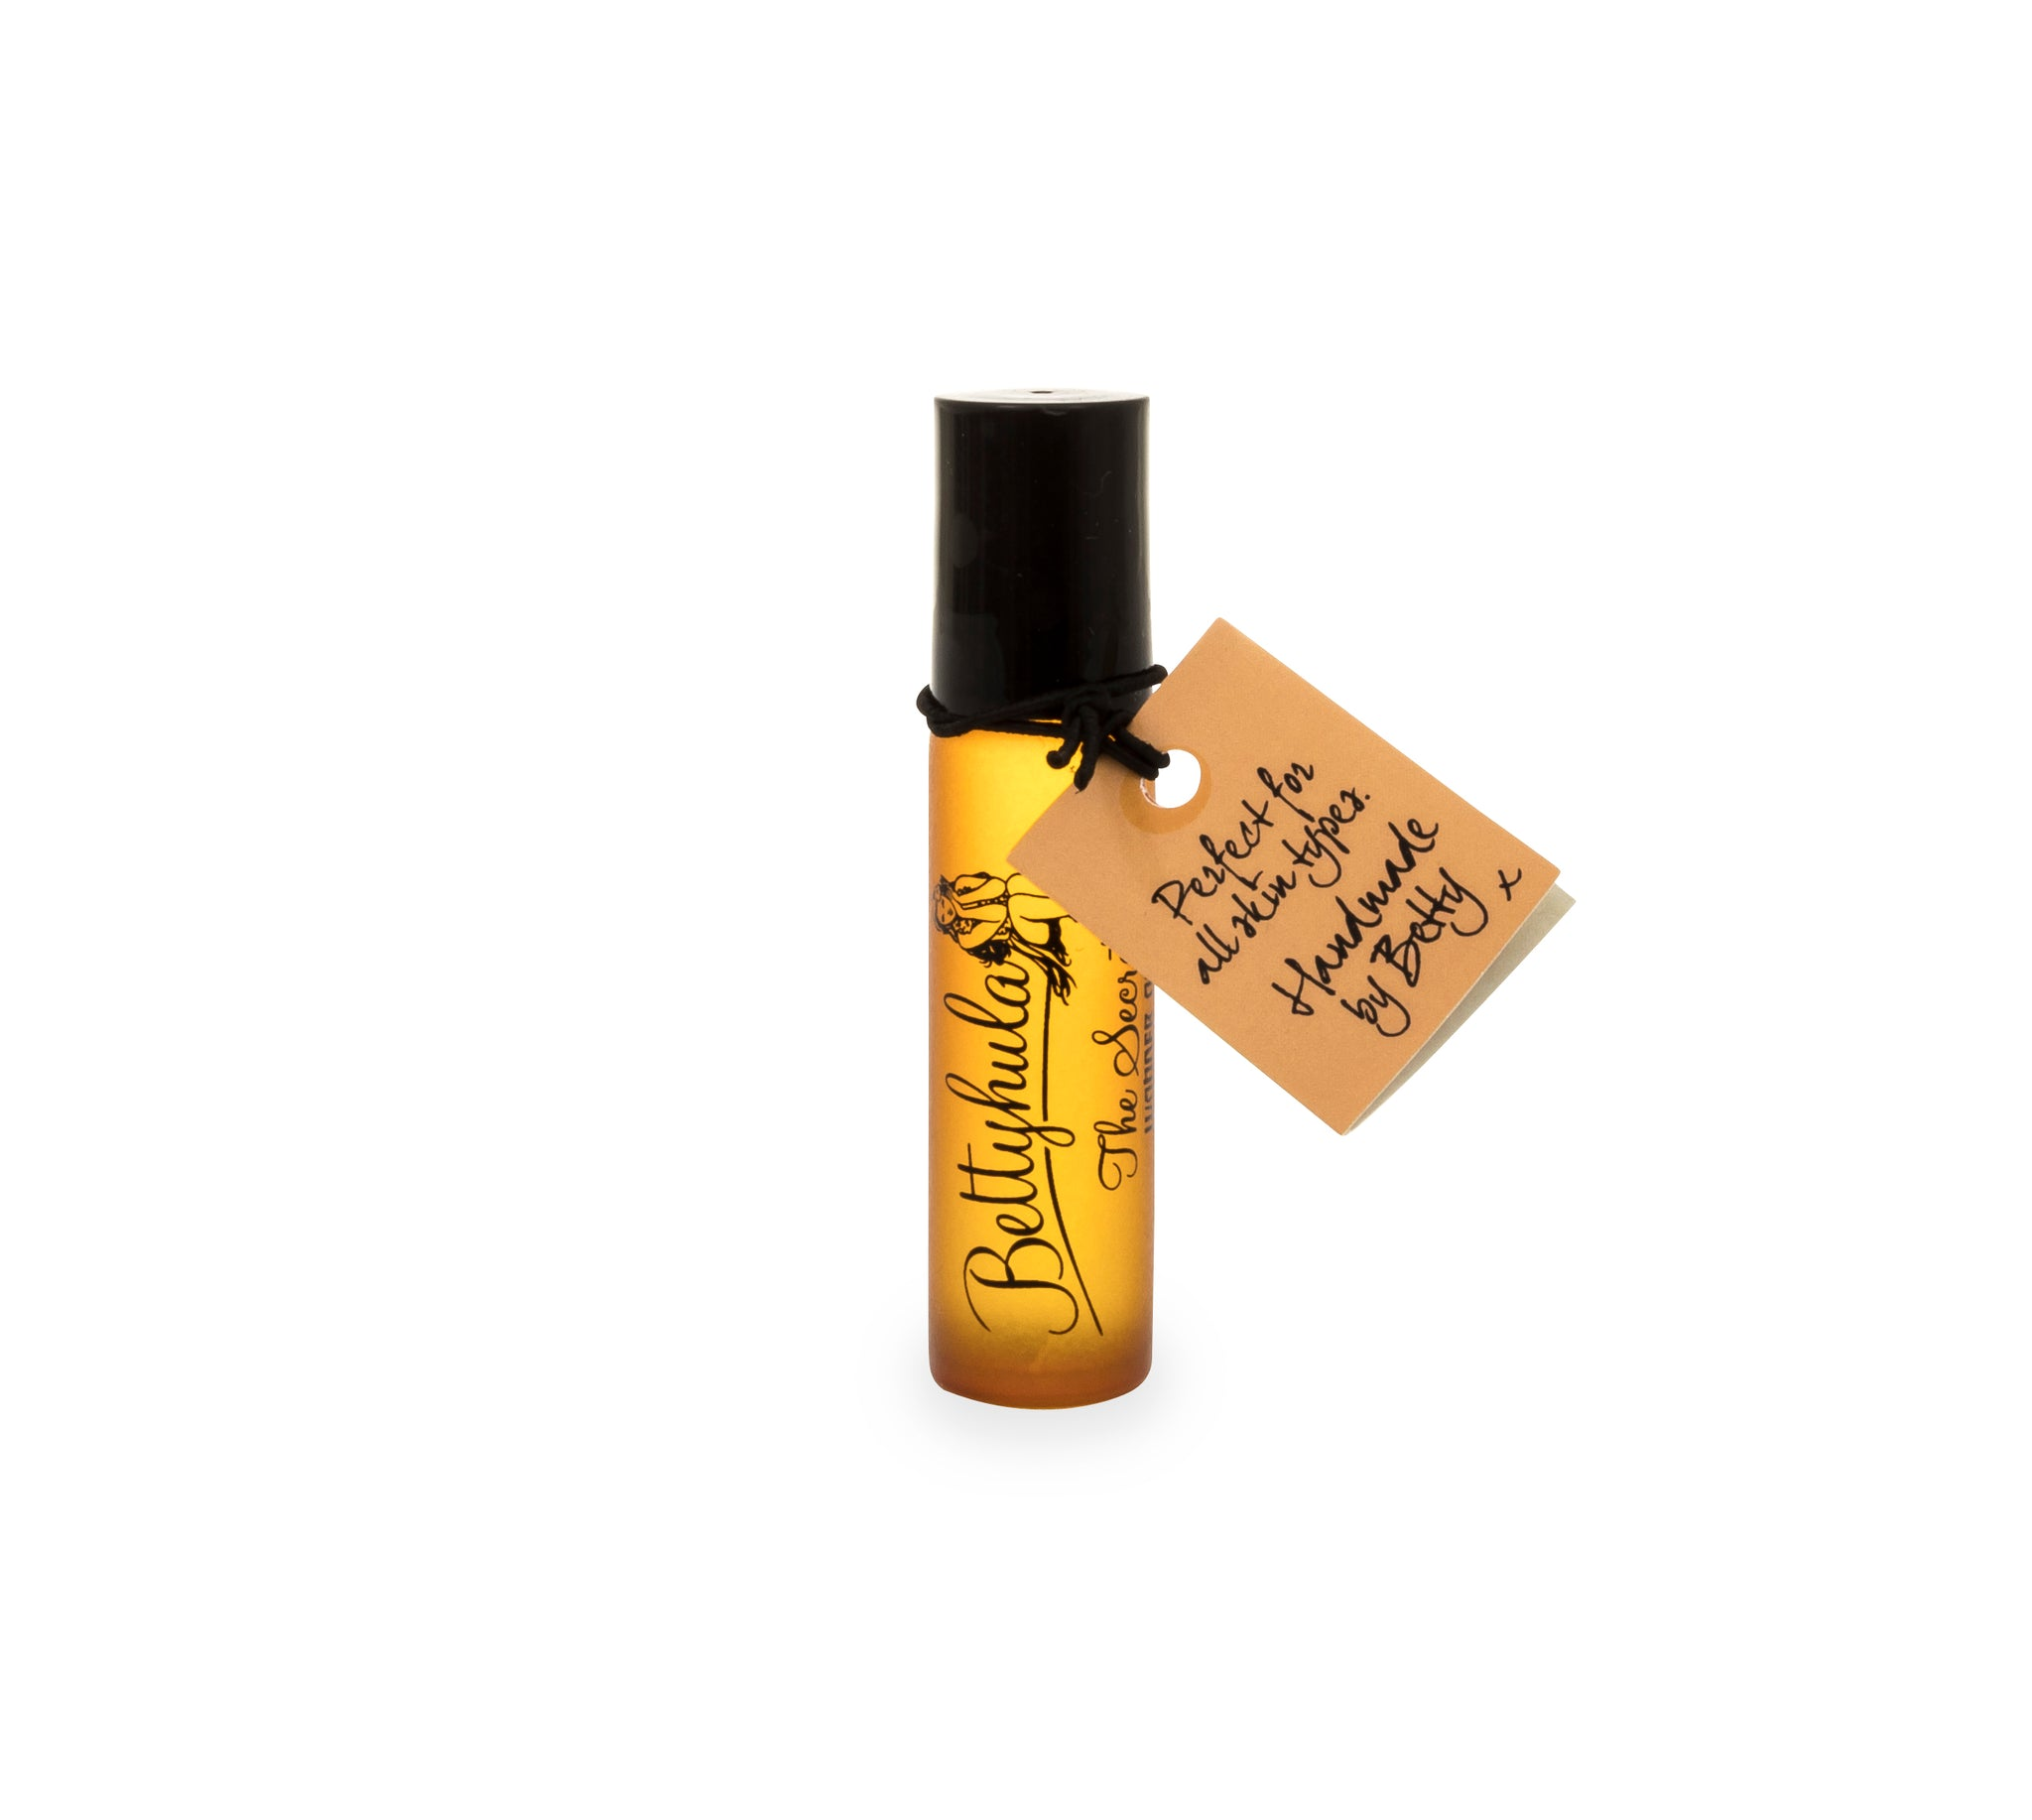 Betty Hula | Secret Wonder Oil On-the-go Rollerball